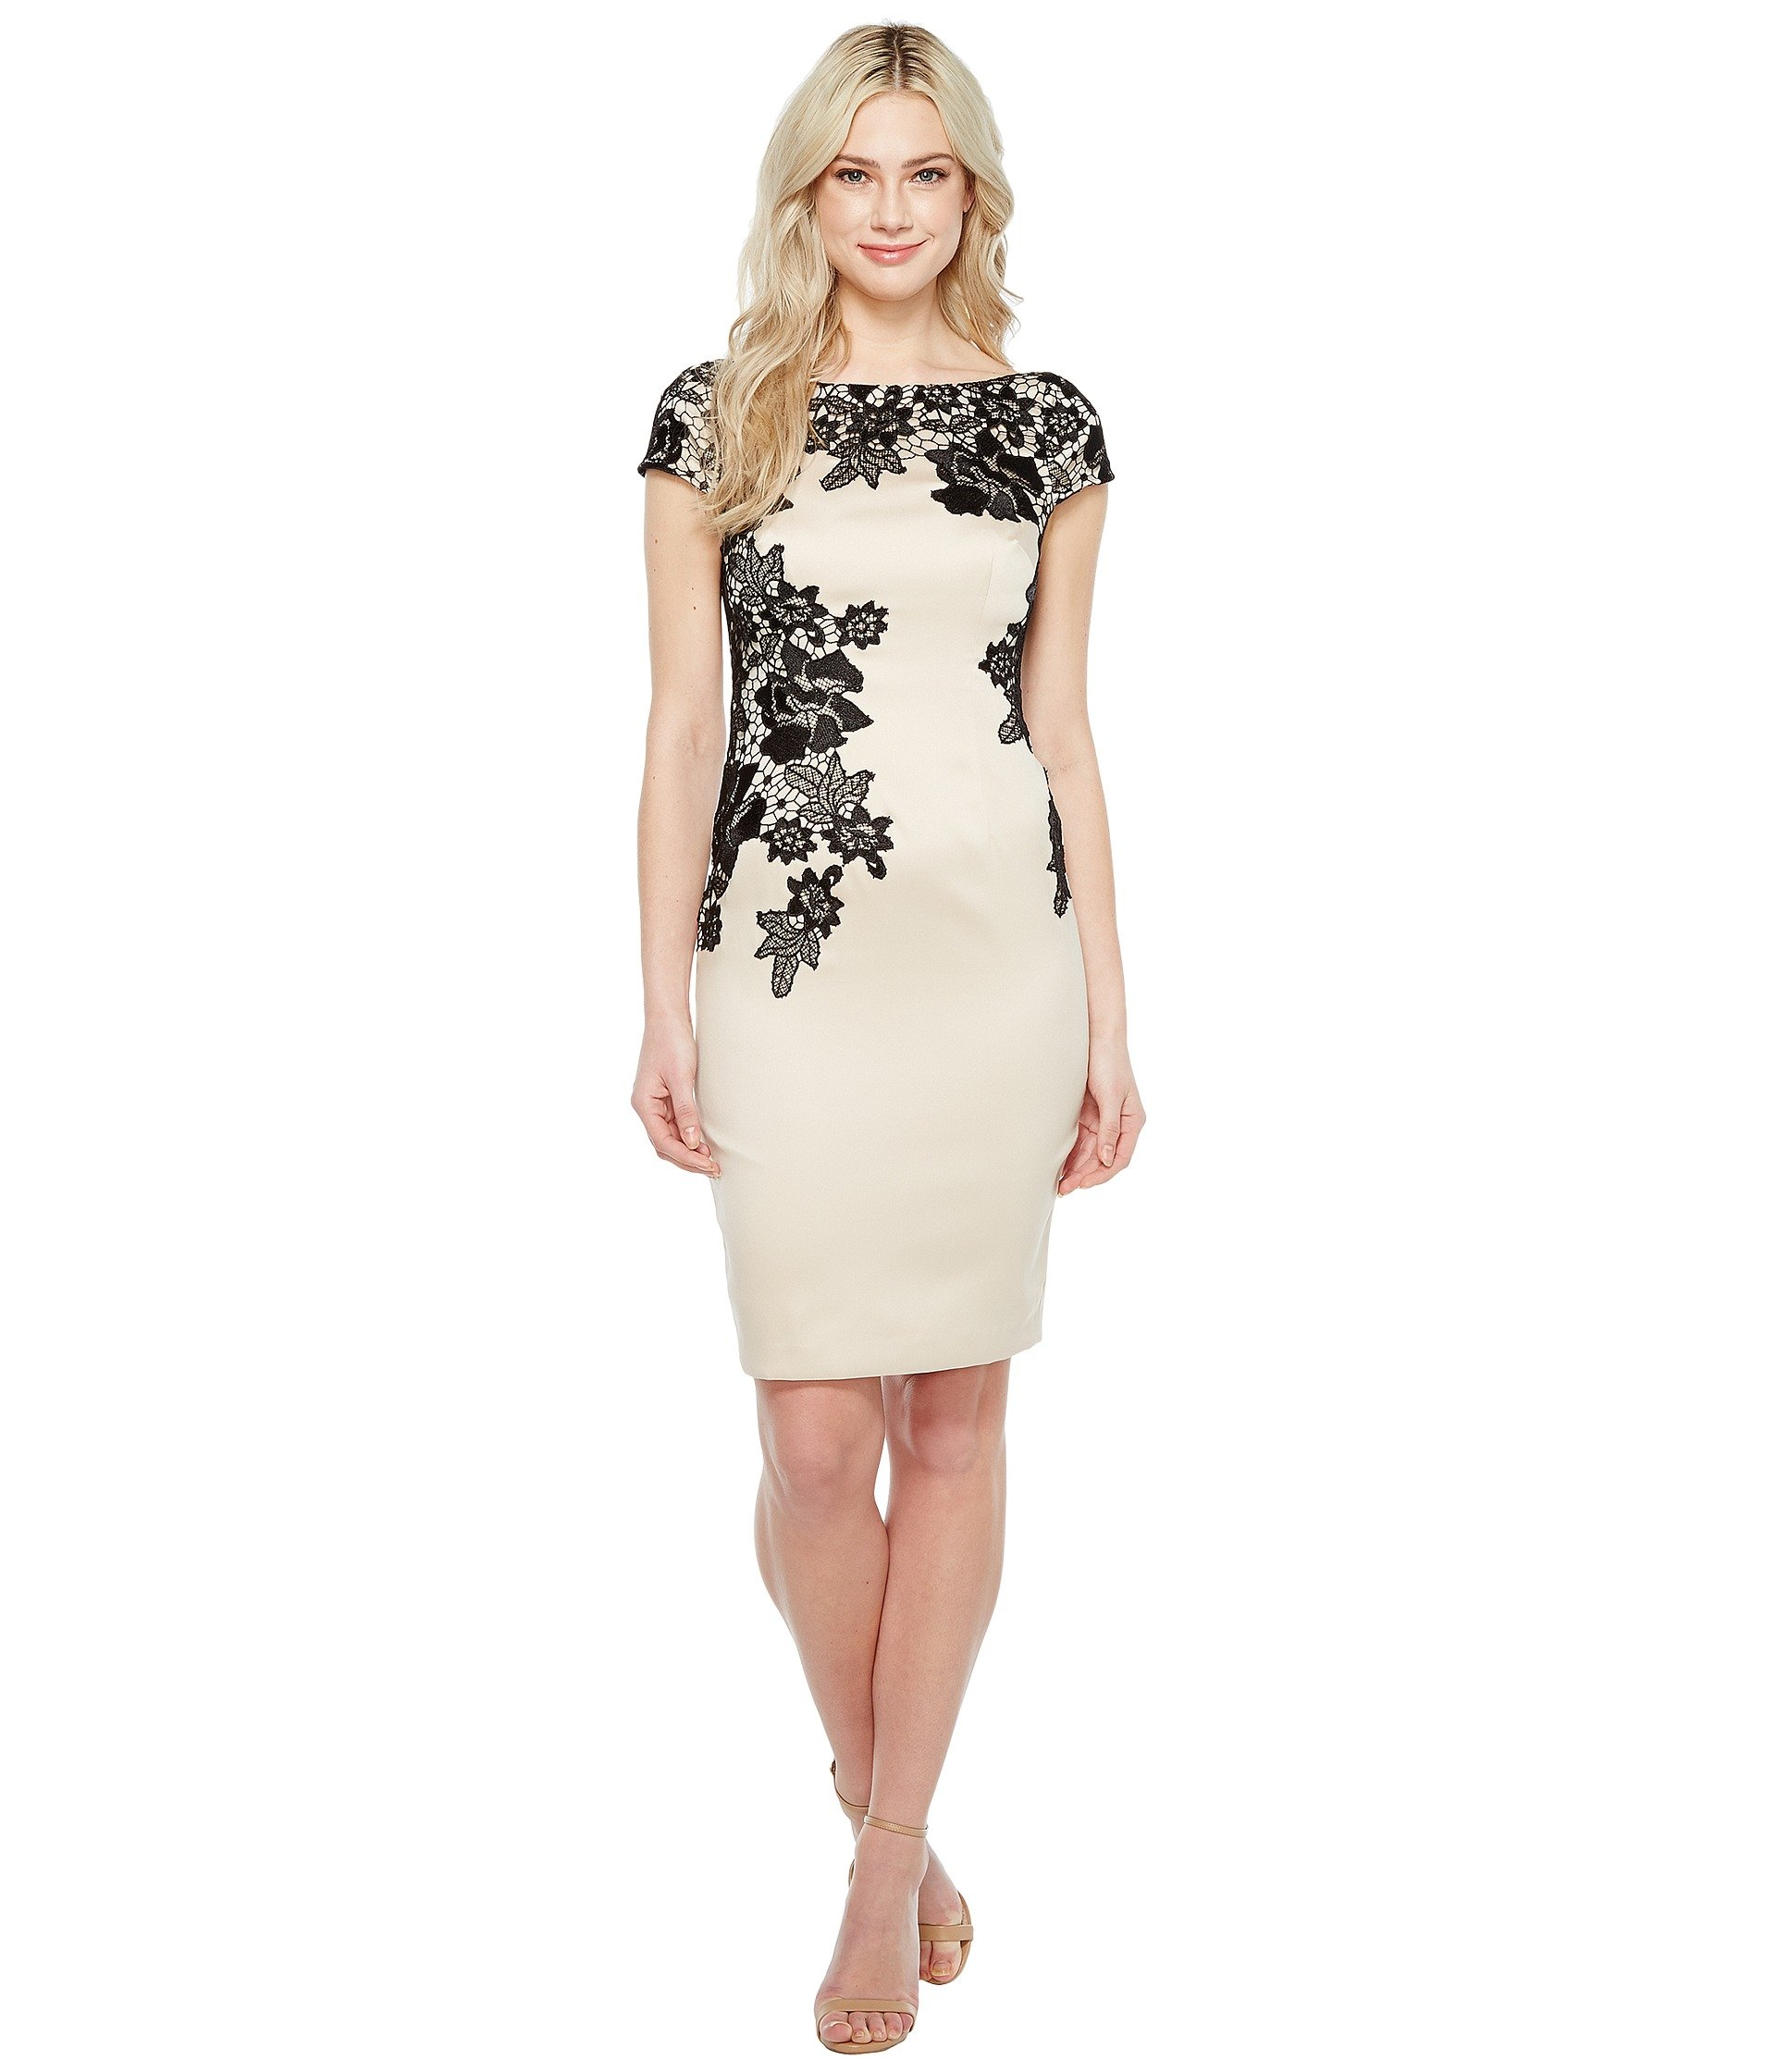 Vestido para Mujer Adrianna Papell Appliqued Lace Sheath Dress  + Adrianna Papell en VeoyCompro.net